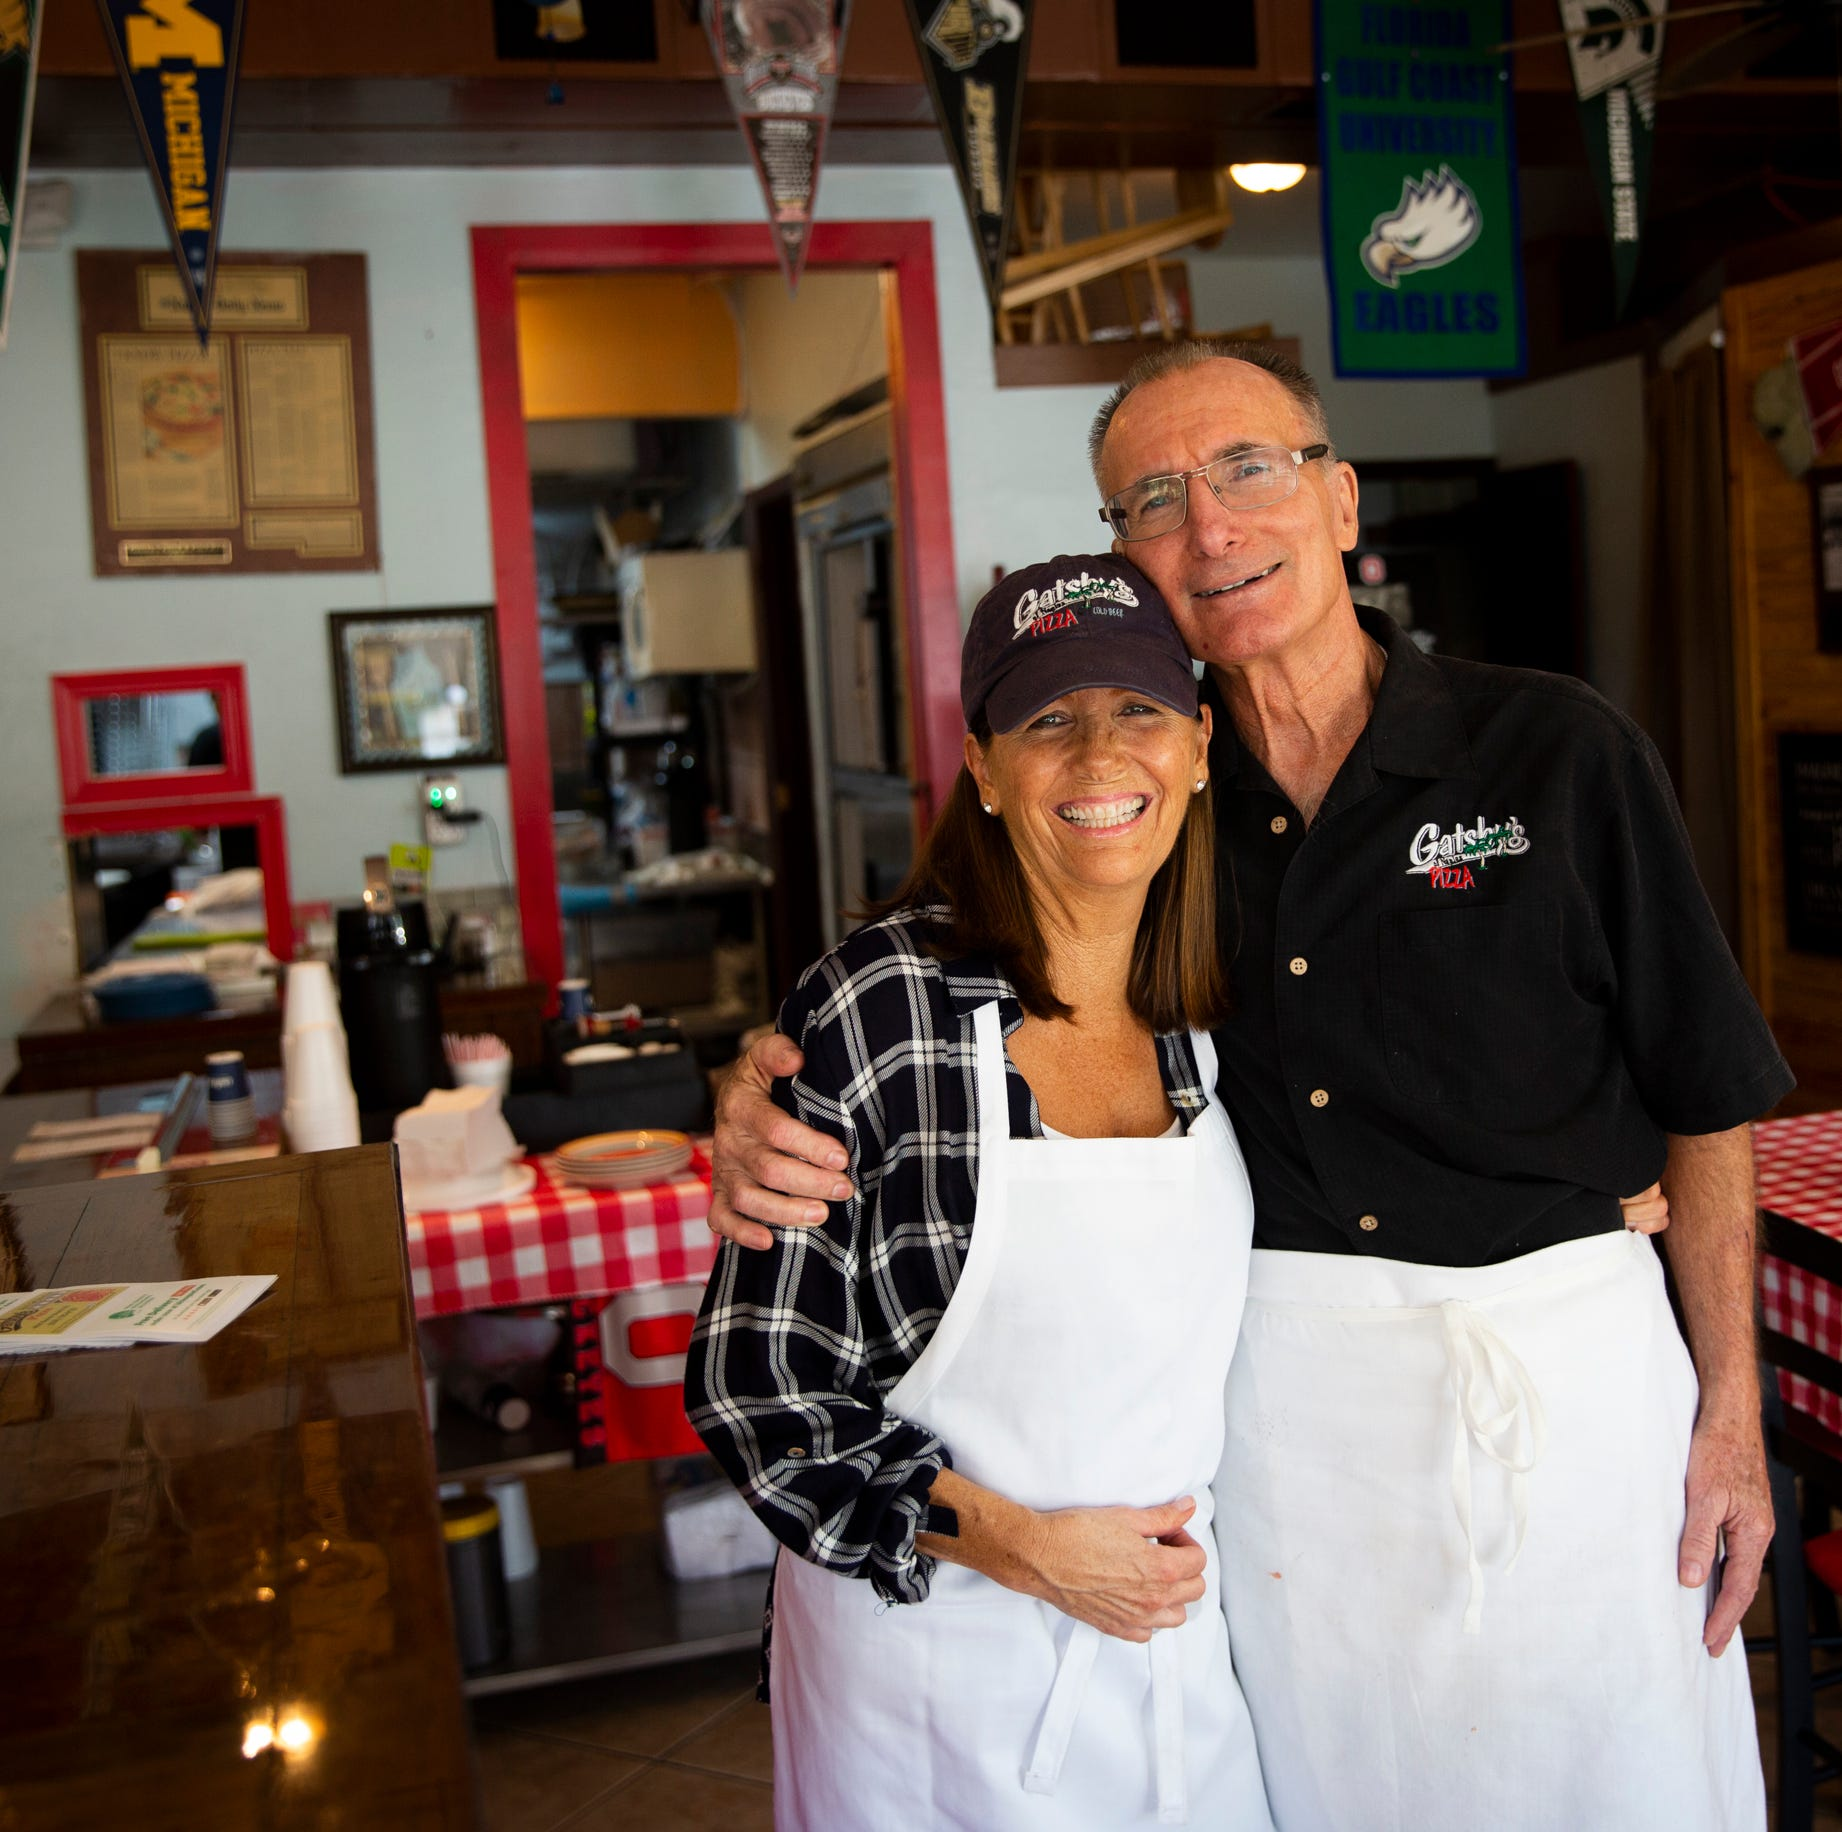 Gatsby's Pizza, and its owner, get another shot at life in Bonita Springs